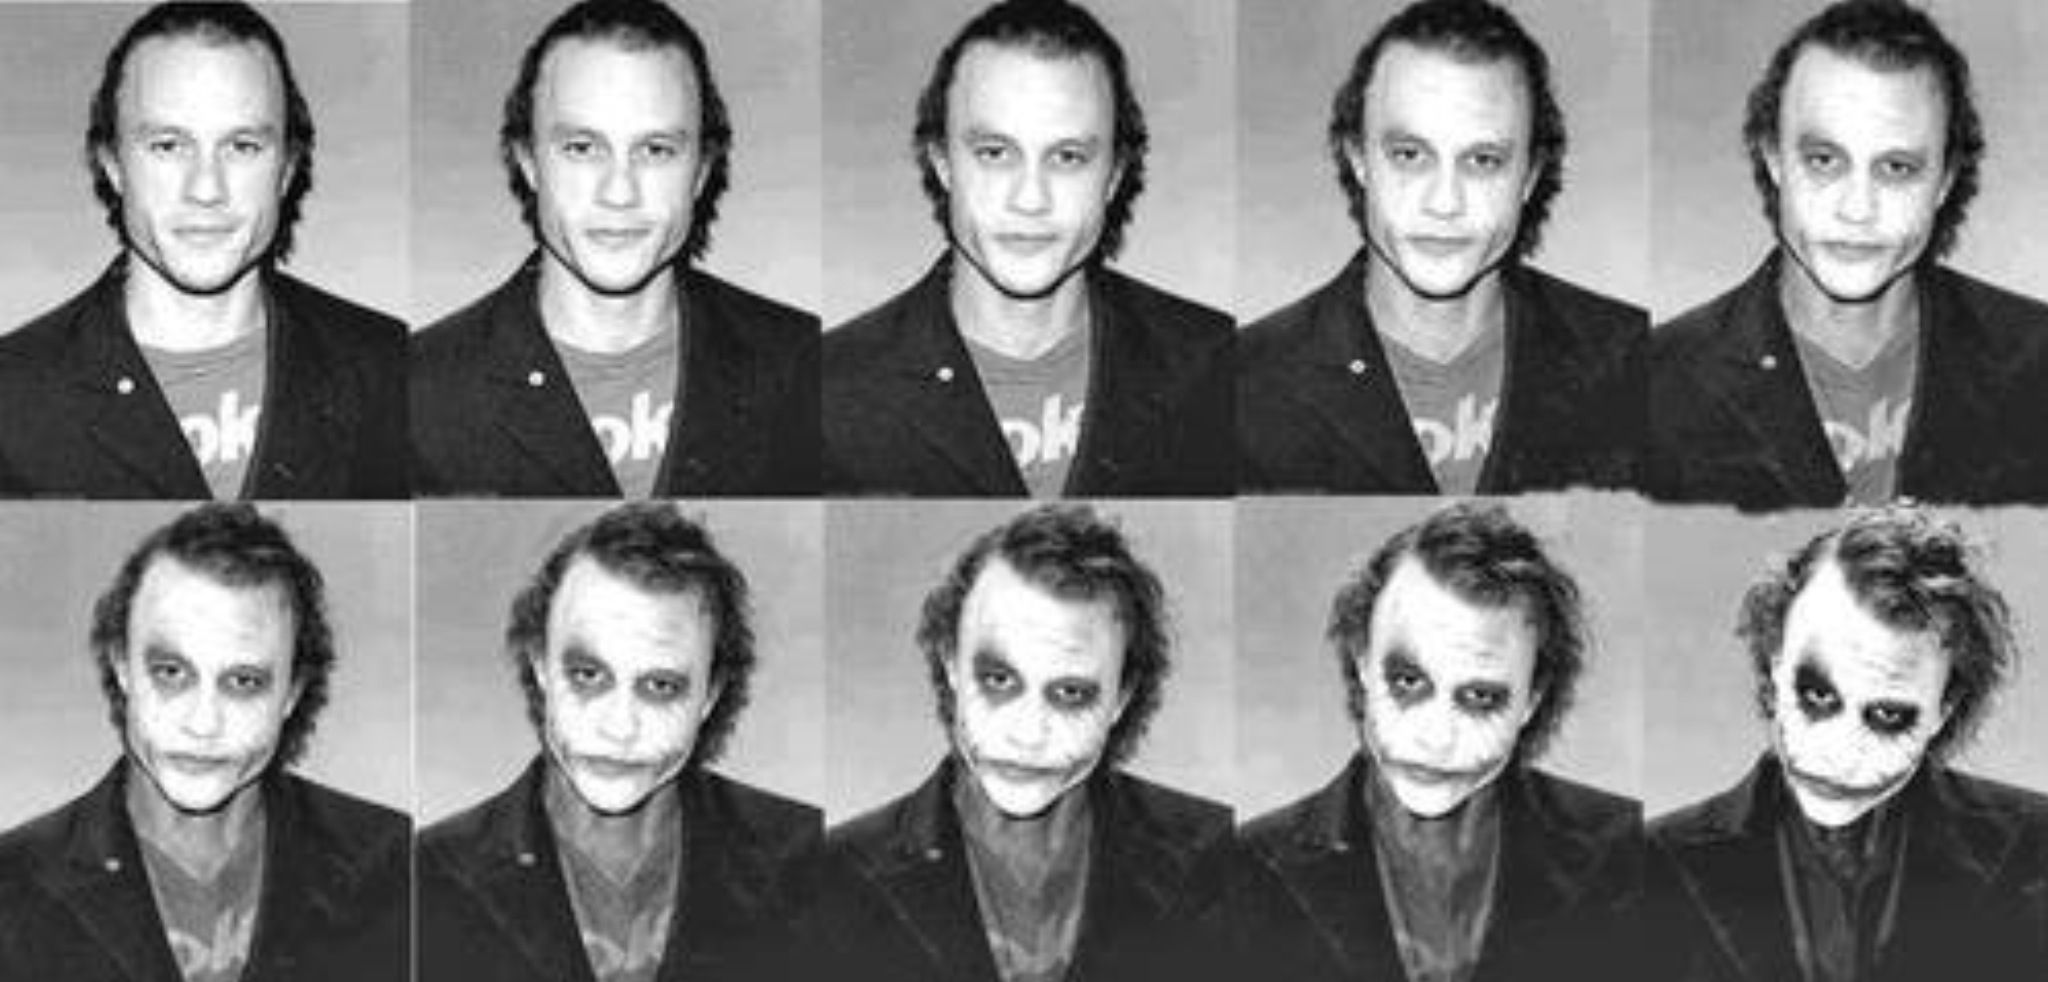 Heath-ledger-joker-transformation